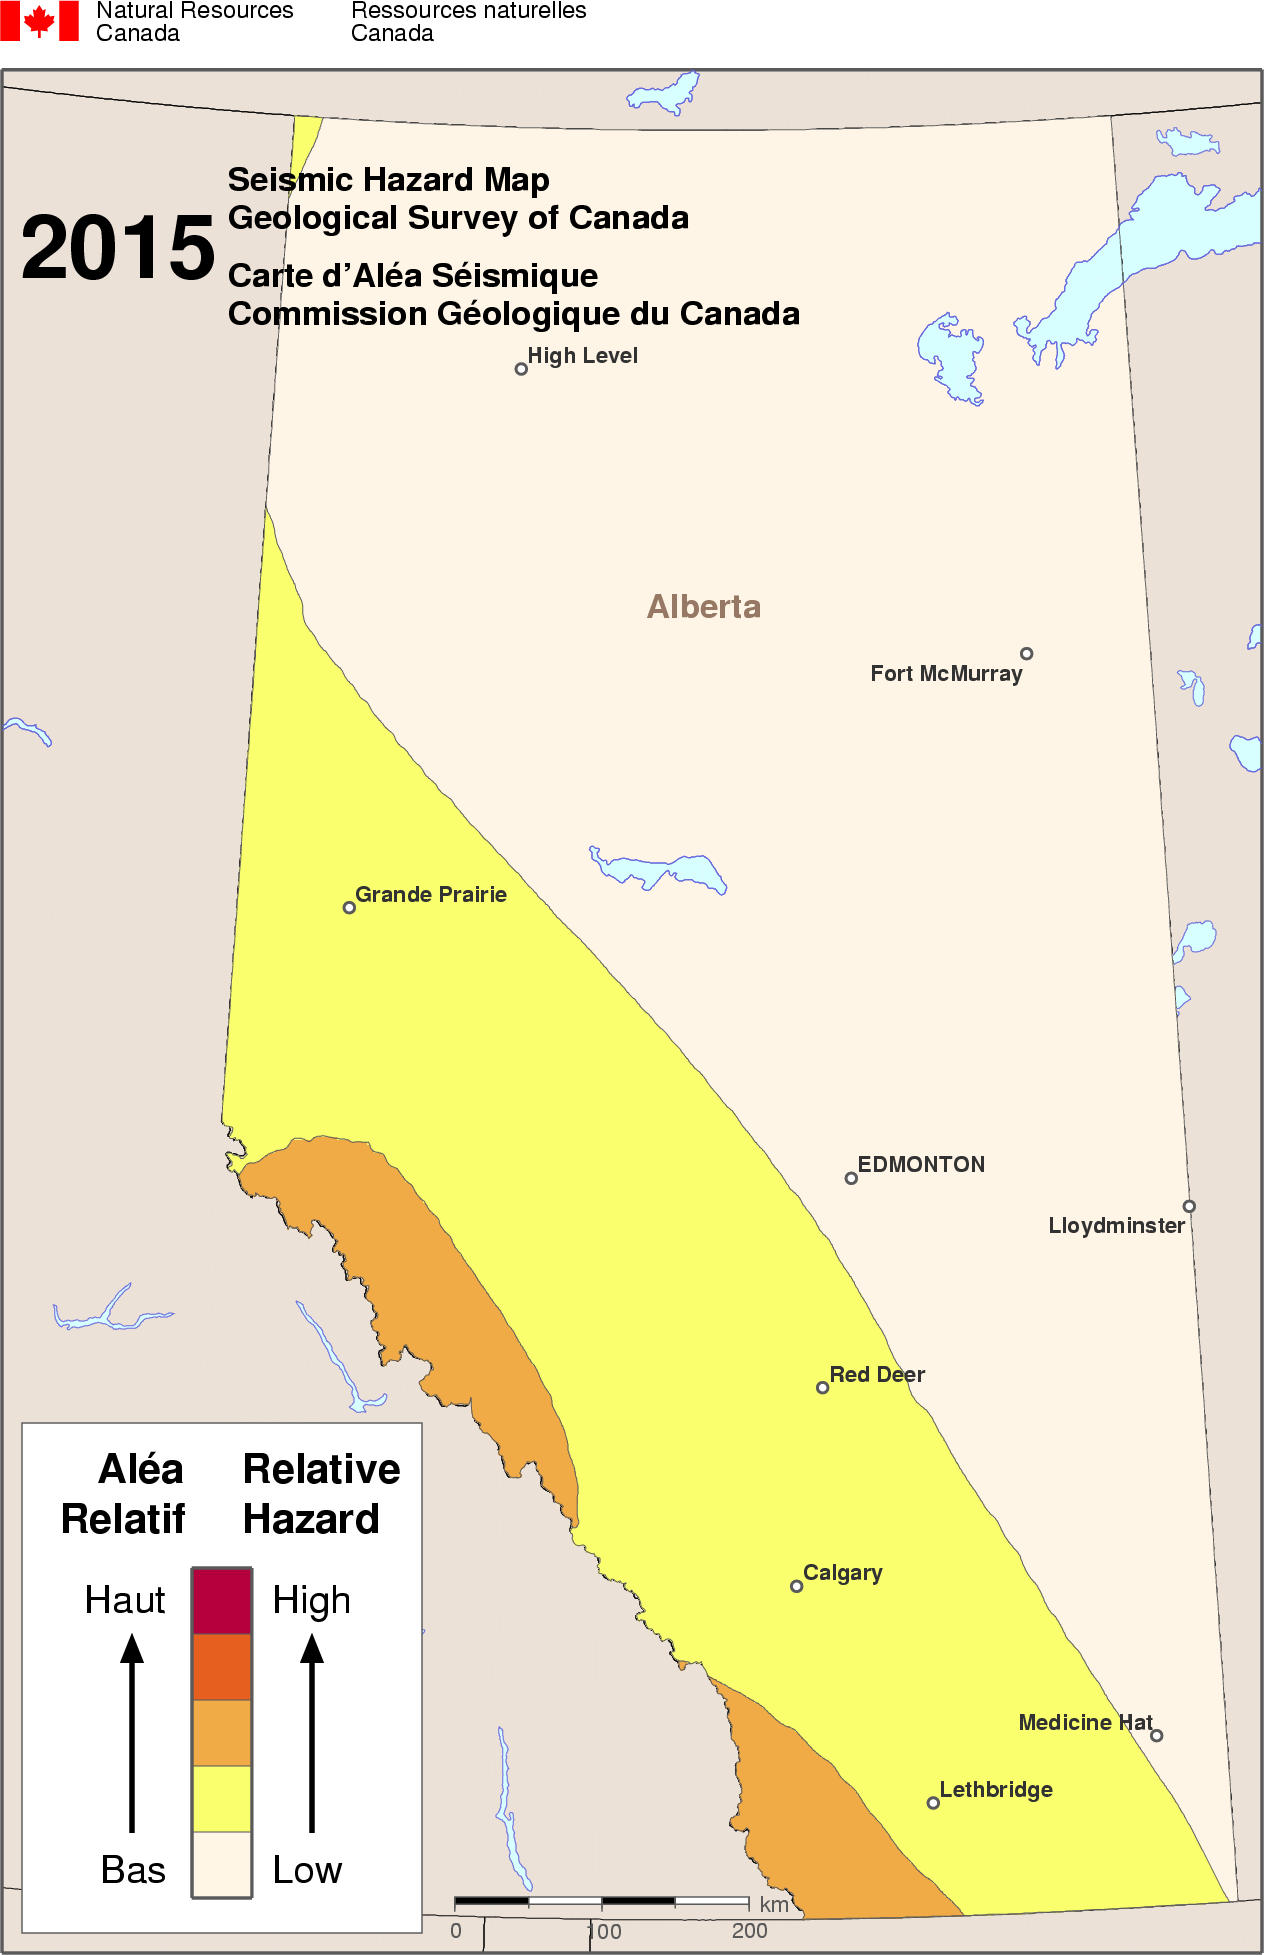 Western Canada Earthquake Map Simplified seismic hazard map for Canada, the provinces and